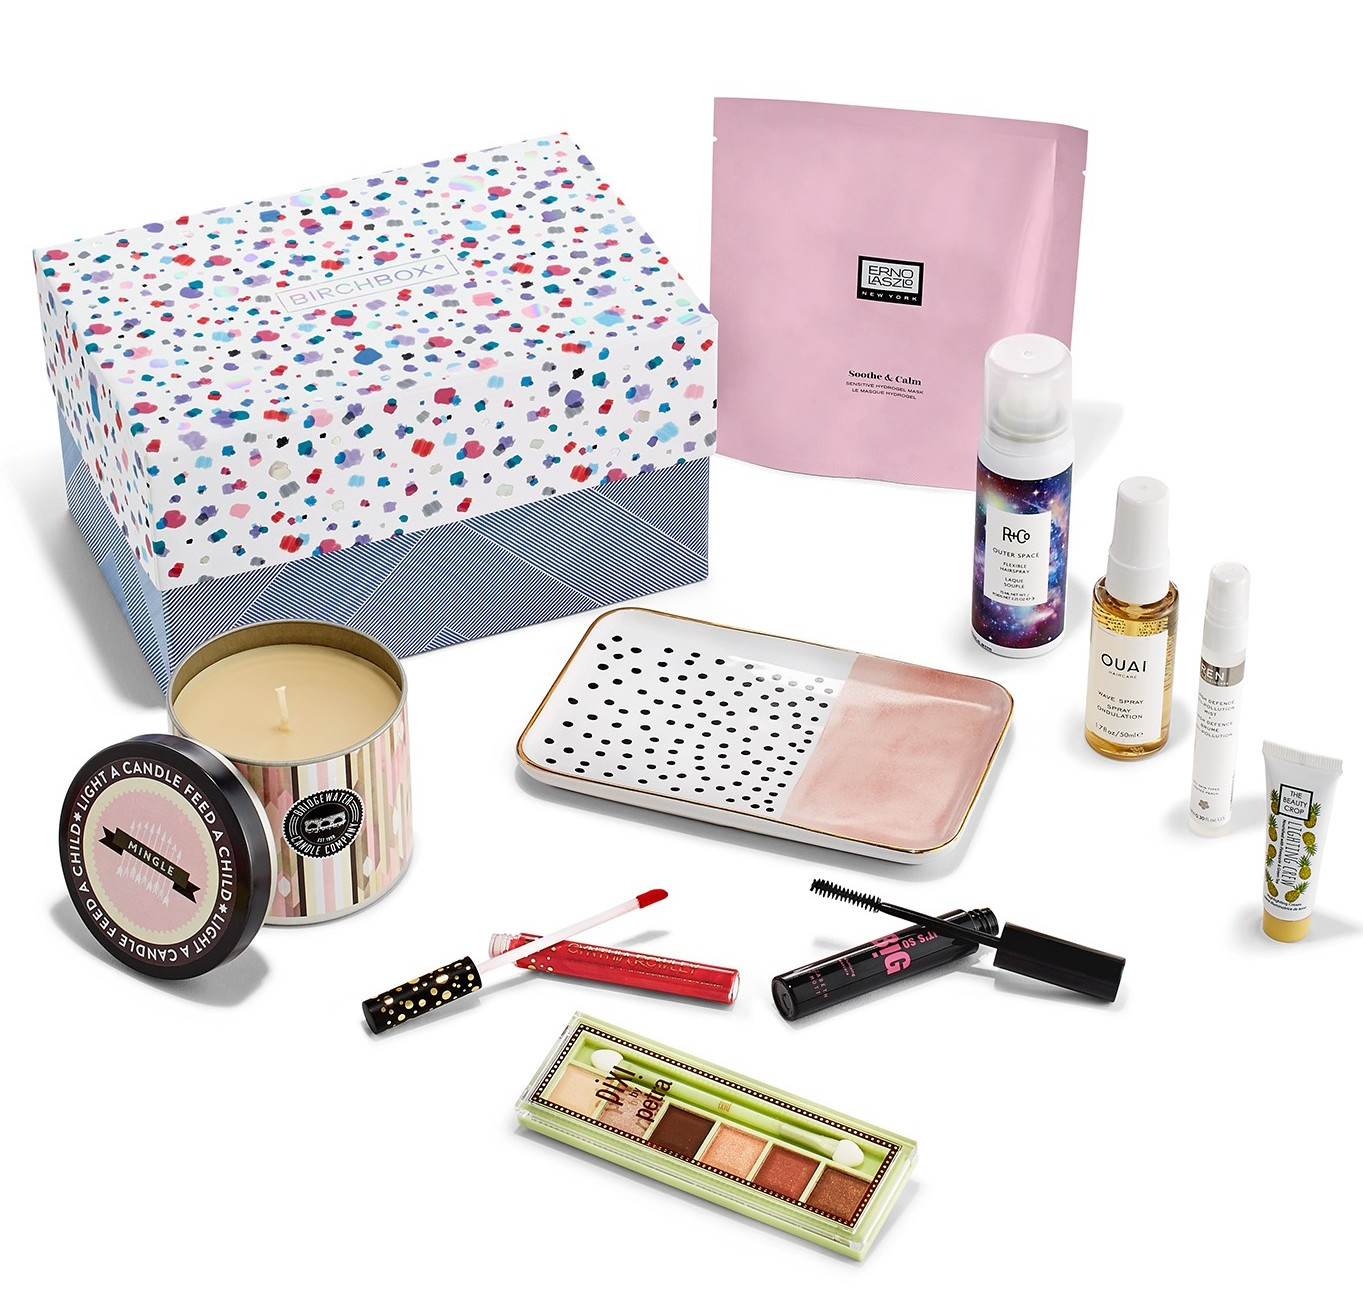 These Birchbox holiday beauty sets seriously have something for everyone on your list